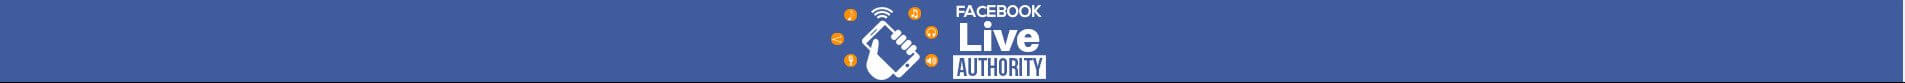 facebook live footer graphic